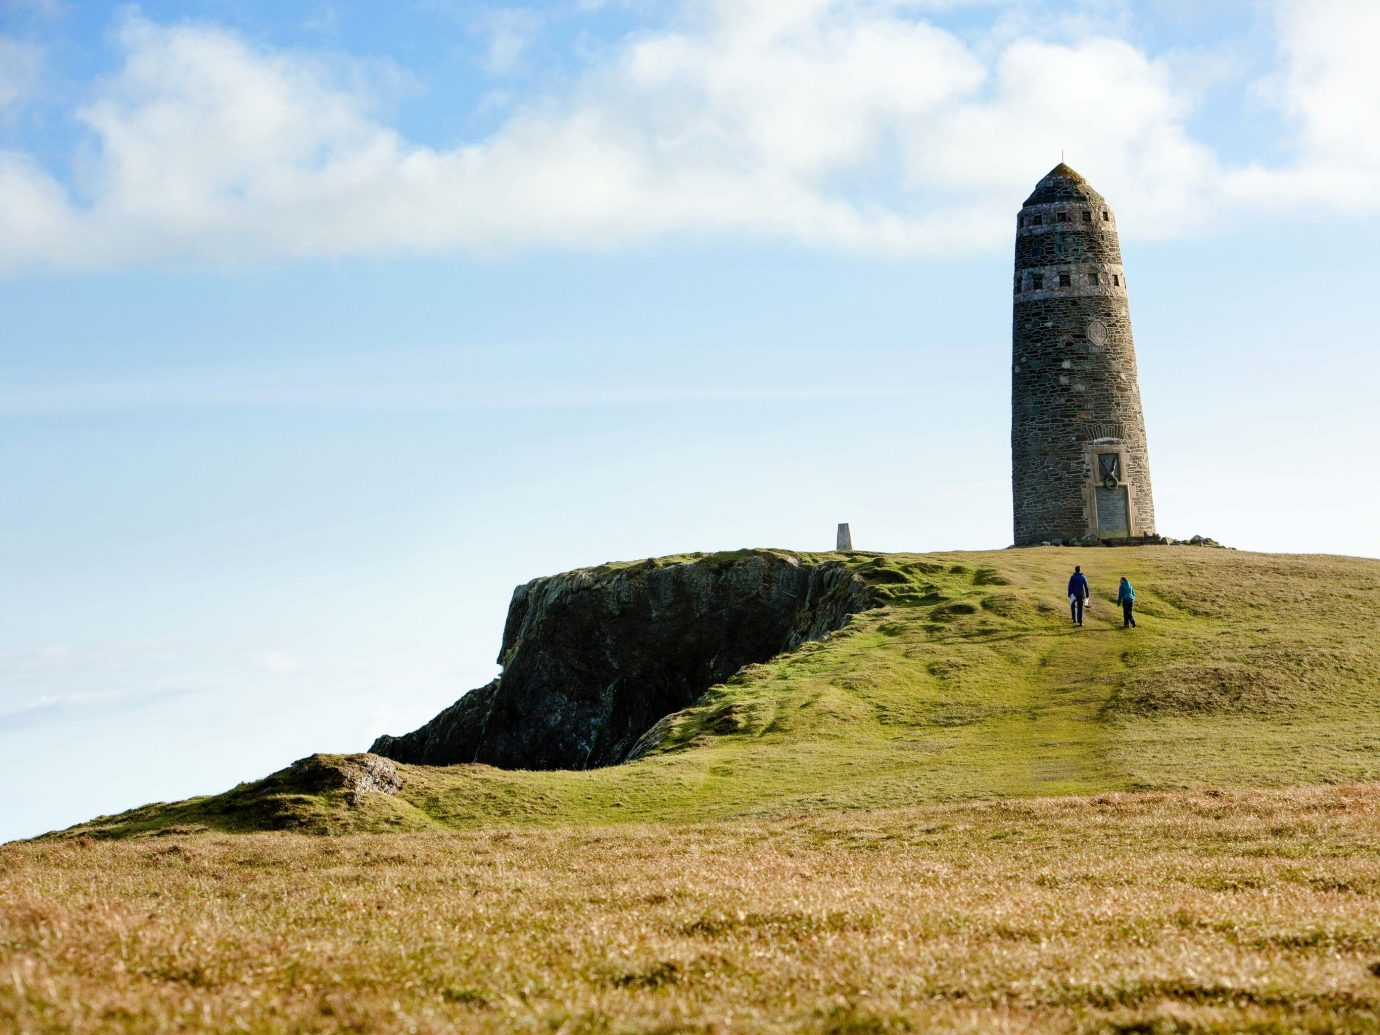 Trip Ideas grass sky outdoor field building promontory grassy megalith tower terrain hill Coast grassland lighthouse Sea cloud beacon headland rock hillside lush day